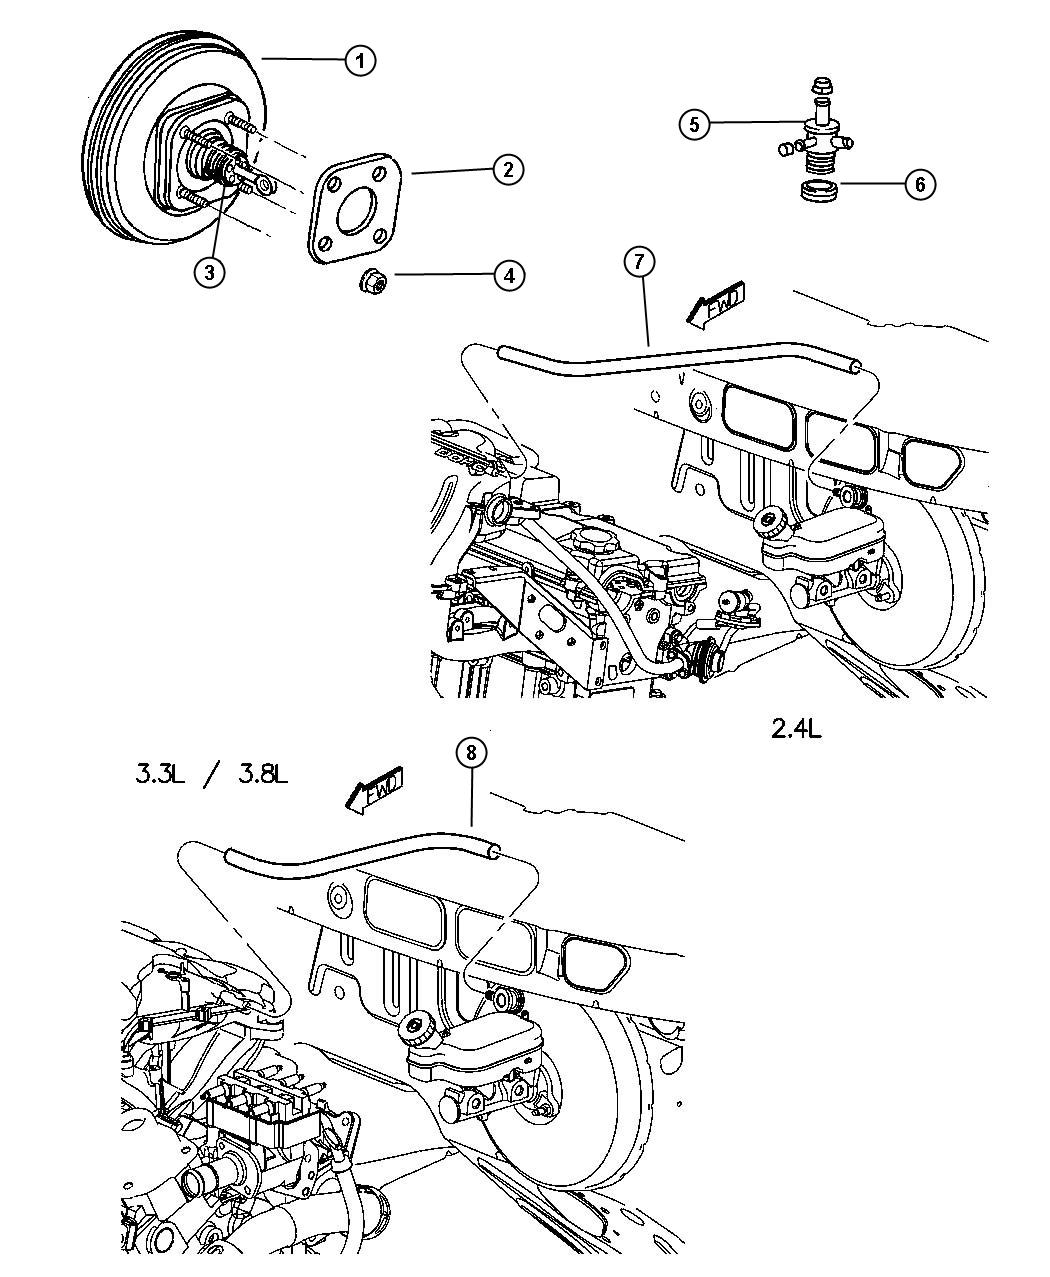 2002 Kia Rio Problems additionally 88 Ford Ranger Heater Diagram also Chrysler Sebring 2 0 2007 Specs And Images besides P 0900c15280268834 as well 88 Fleetwood Wiring Diagram. on 88 chrysler lebaron